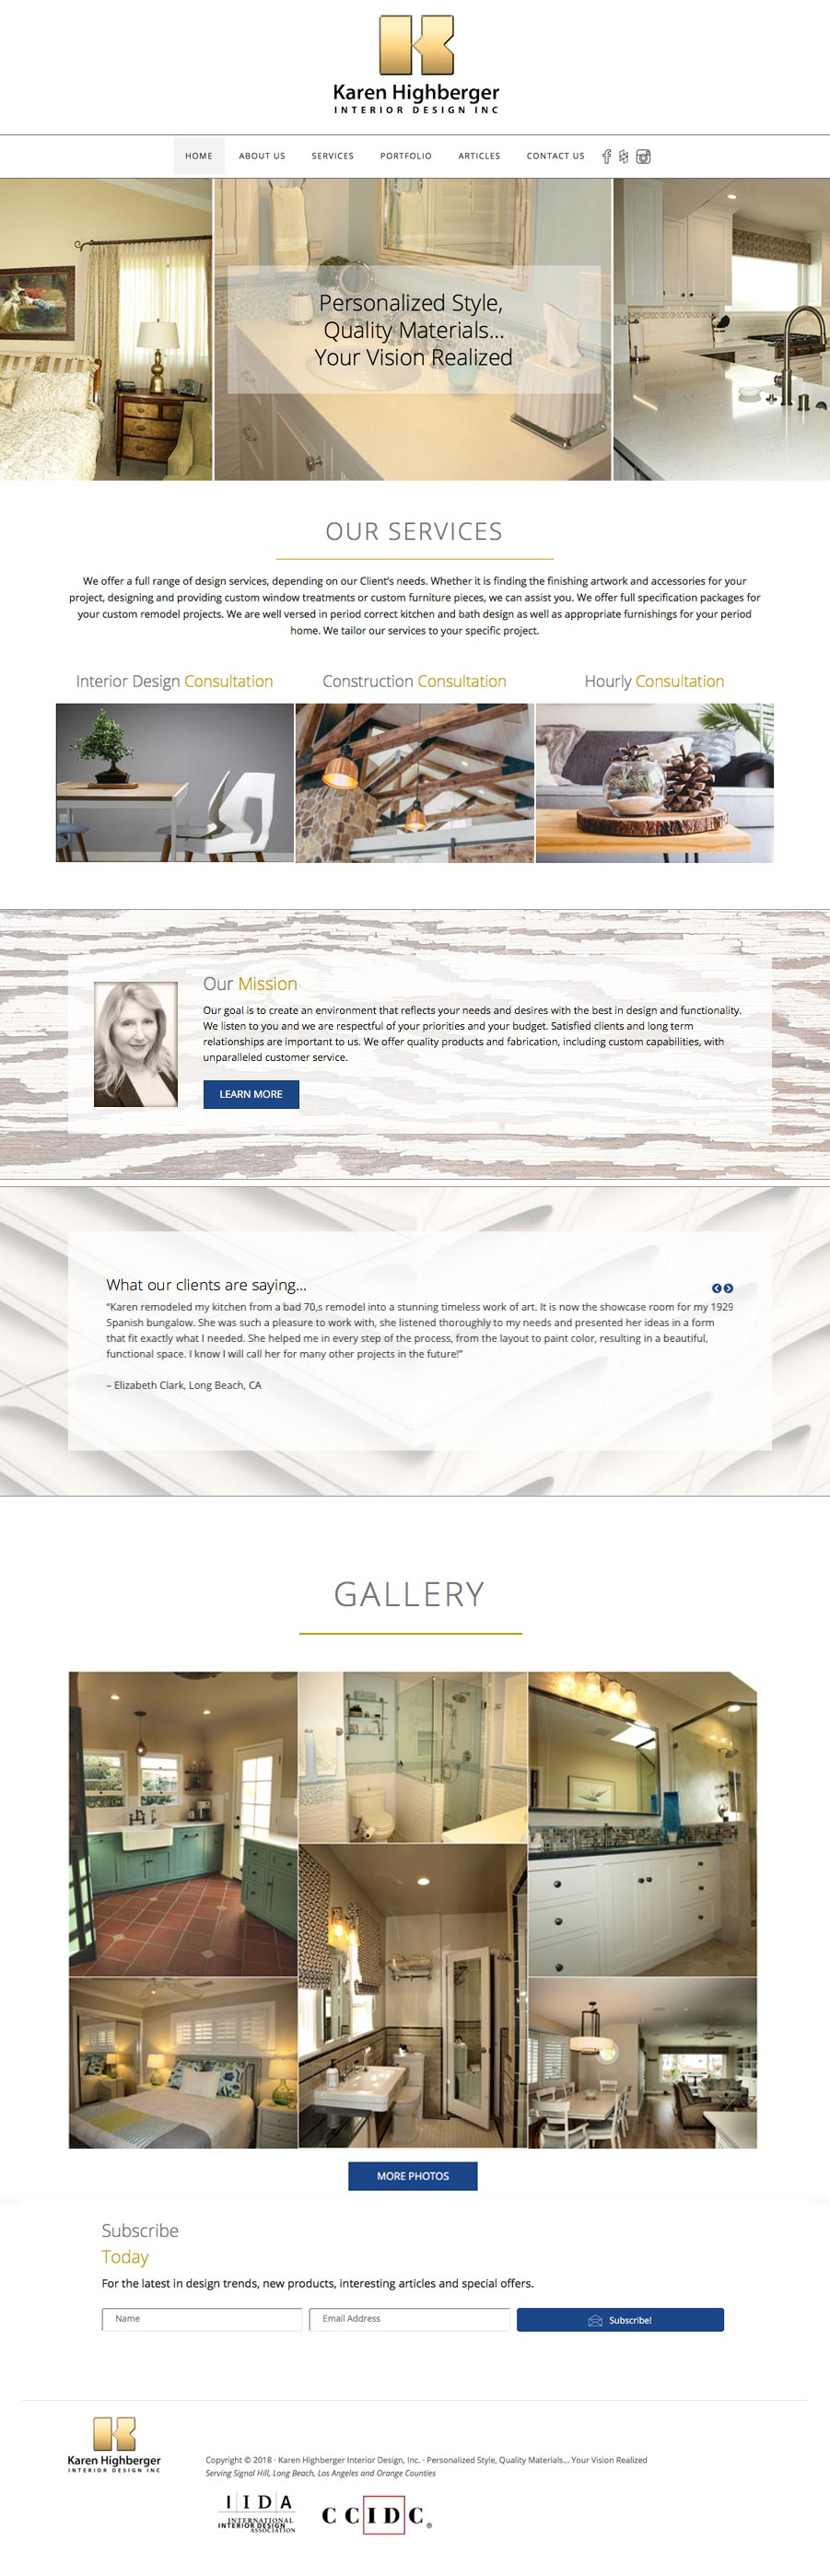 karen highberger interior design website